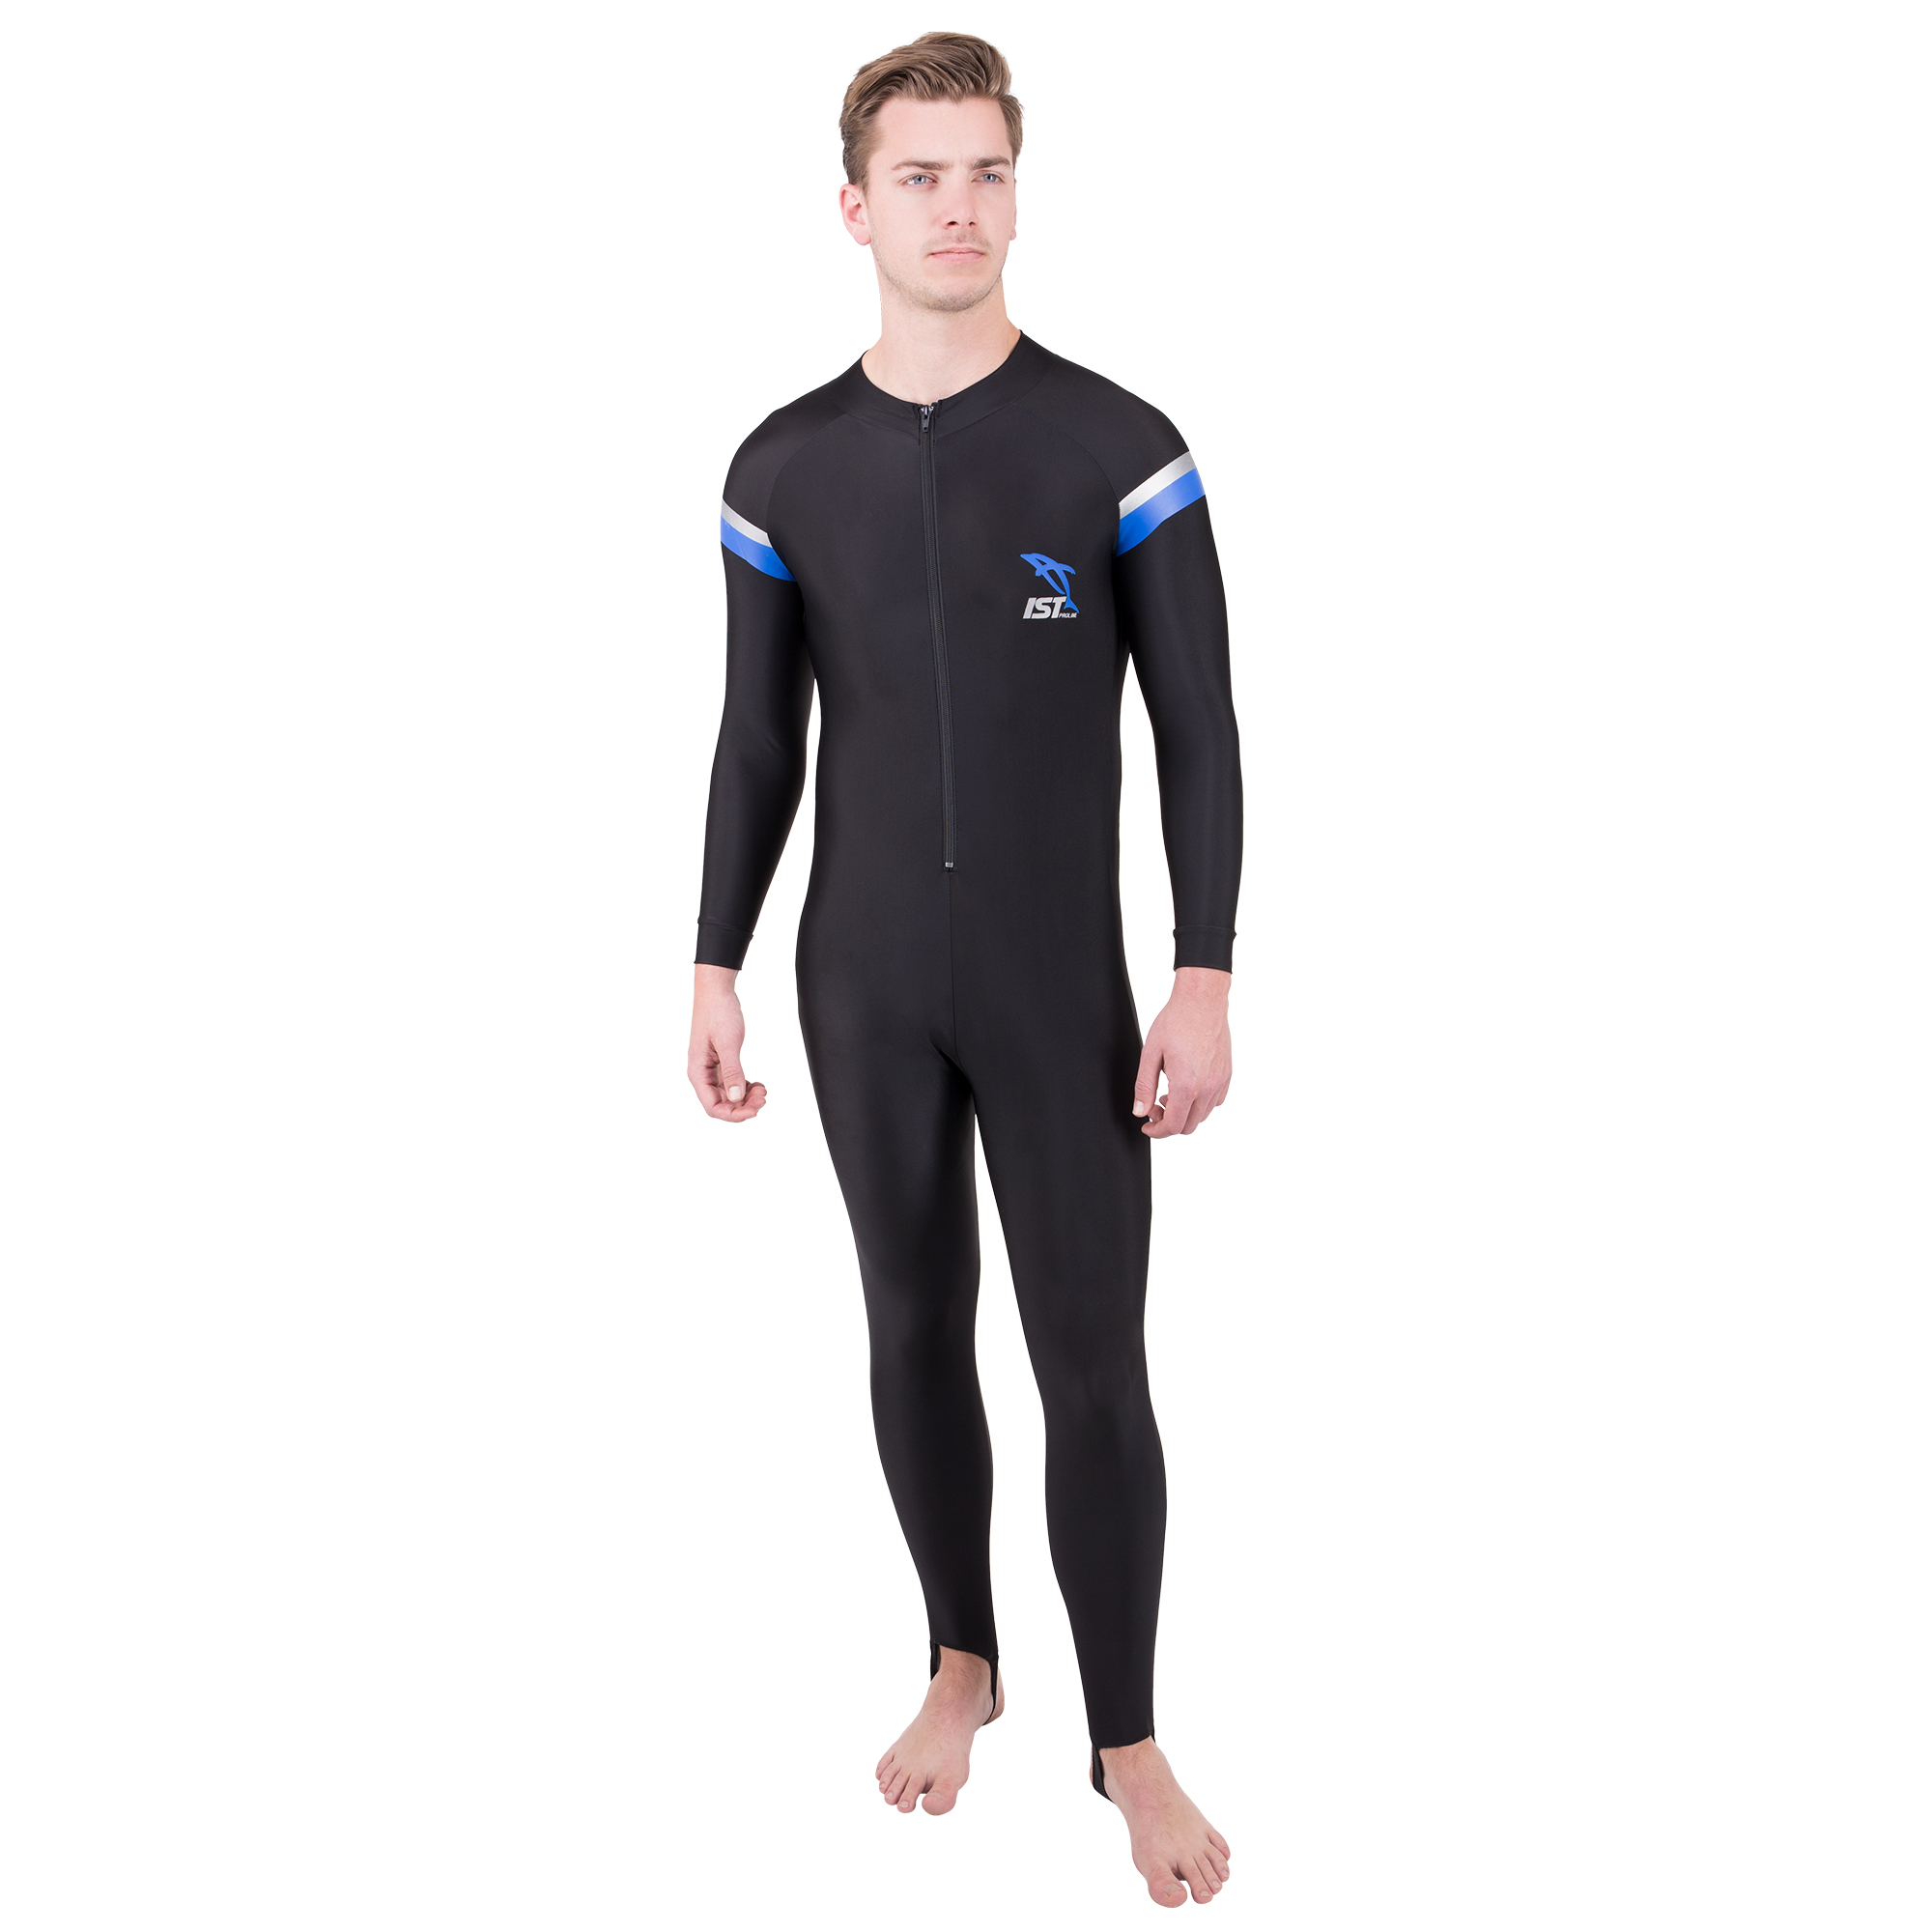 Men's Full Length Spandex Dive Skin